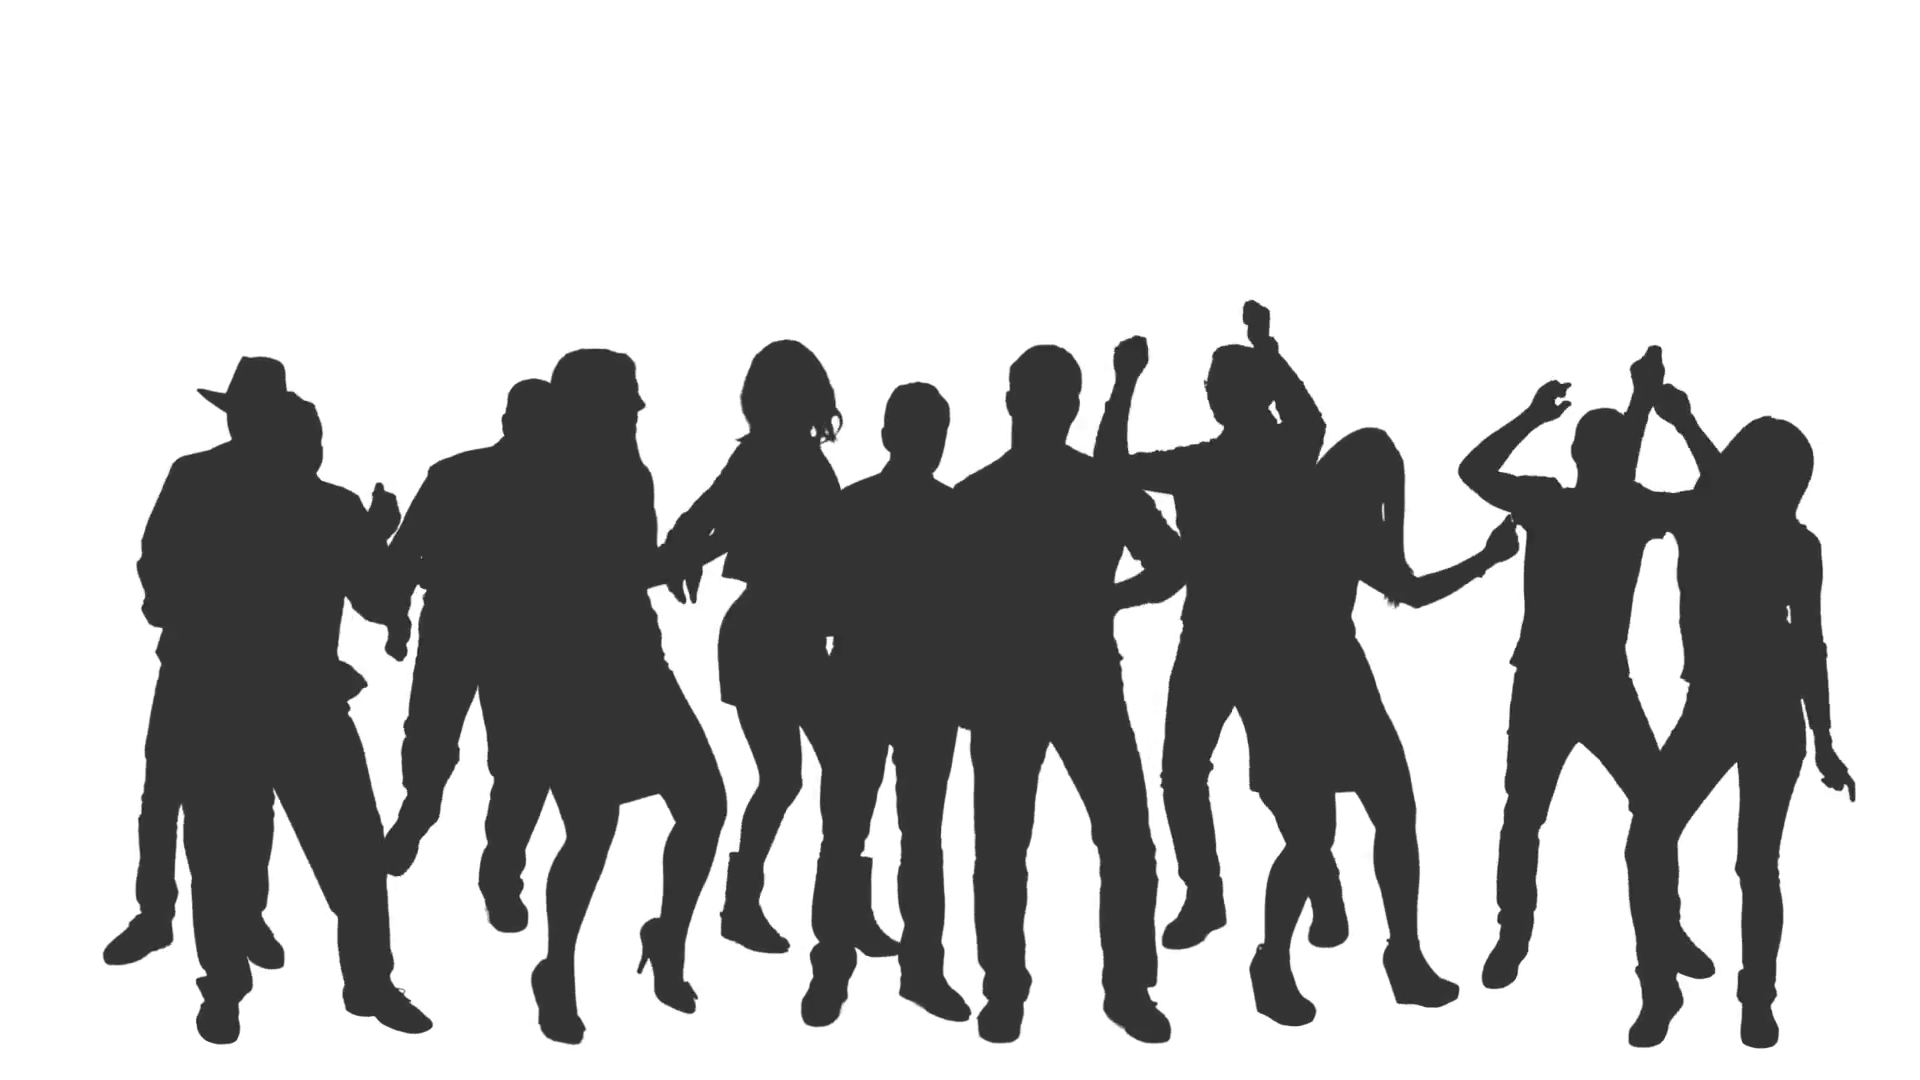 Silhouette Of Dancing Crowd Full Hd Footage With Alpha Channel Download Free Best Quality On Clipart Email Silhouette Png Silhouette Alpha Channel